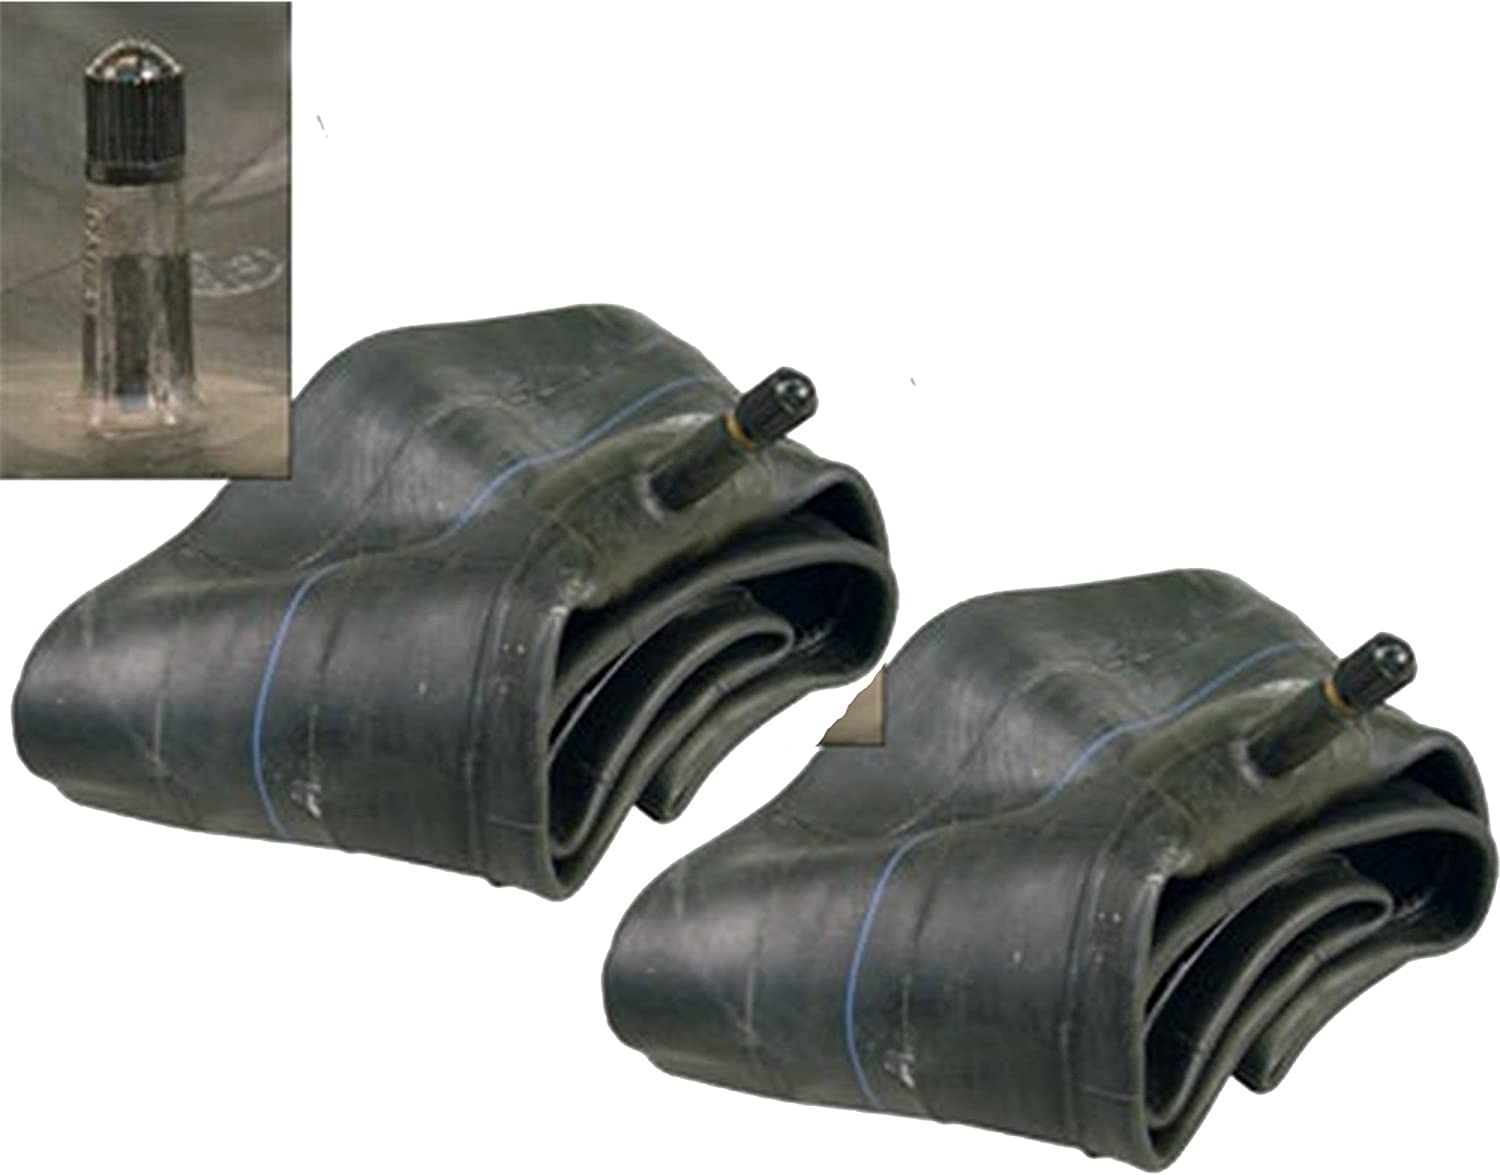 PACK OF 2 (two) Firestone Inner Tube 4.80-8/4.00-8/4.00-9/4.80-9 Inner Tube With TR13 Straight Stem - Fits Great With Lawn Mower, Garden Cart, Wheelbarrow, Hand Truck